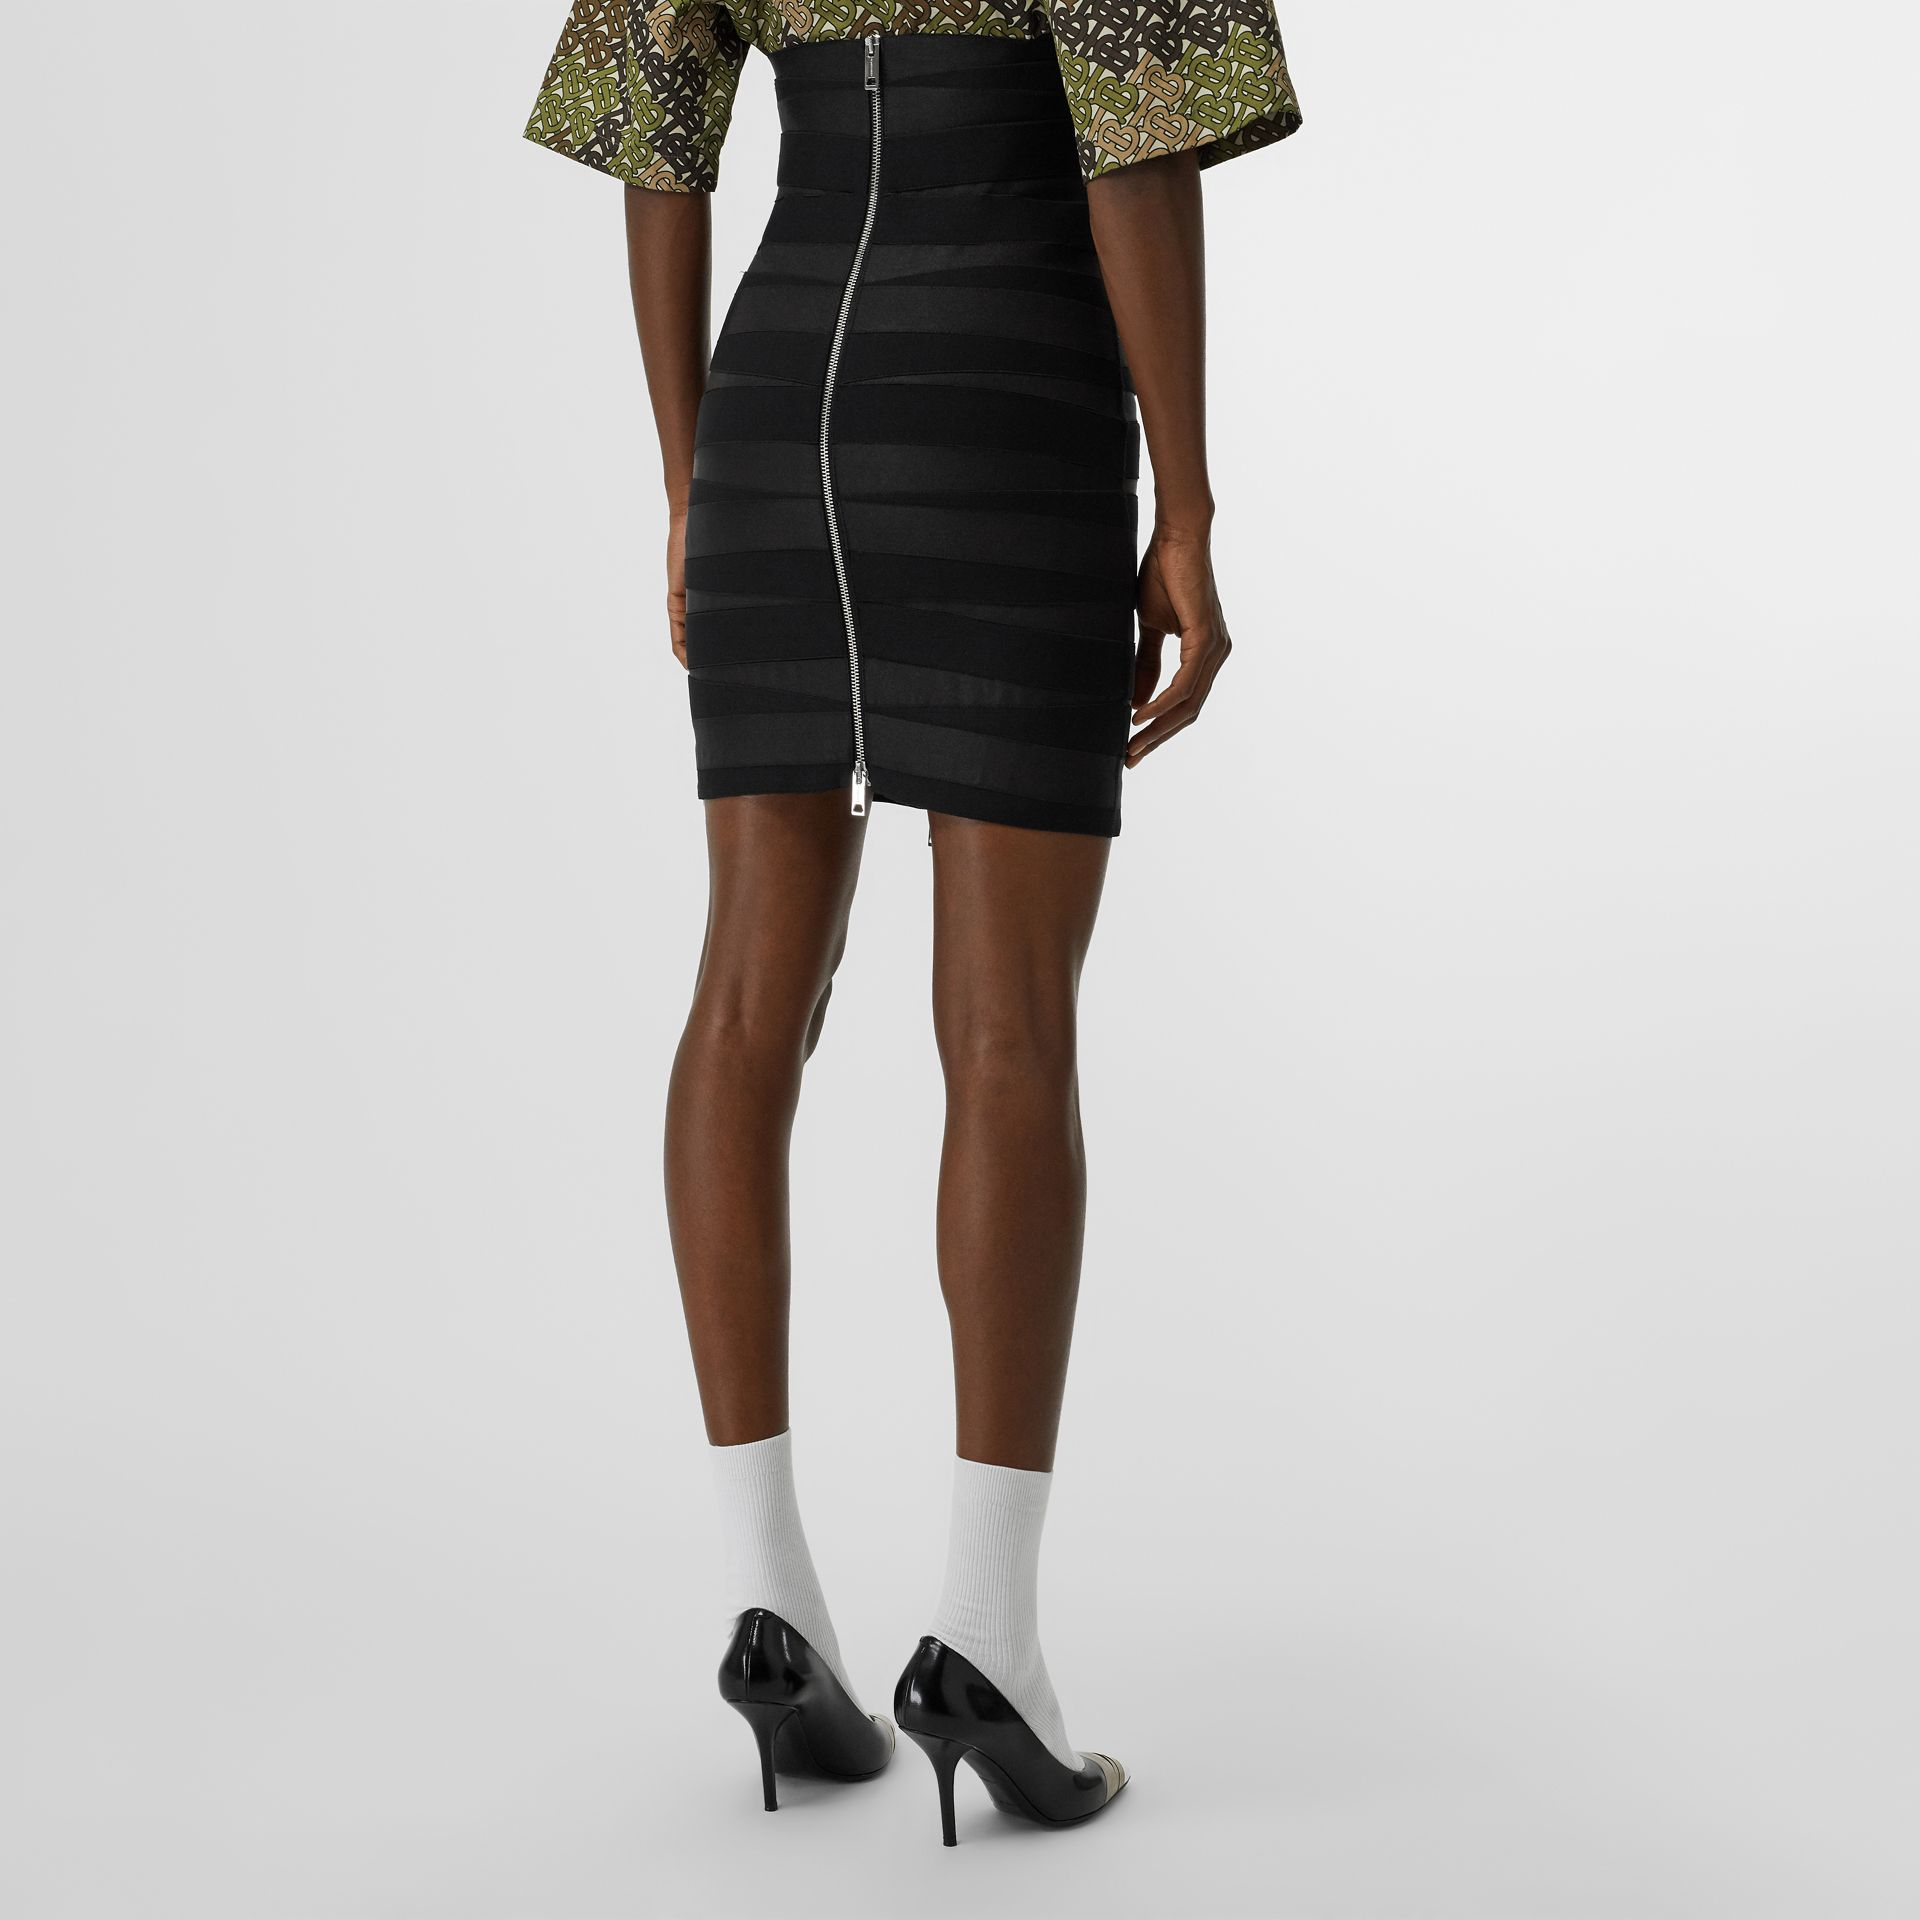 Stretch Zip-front Bandage Skirt in Black - Women | Burberry Australia - gallery image 2